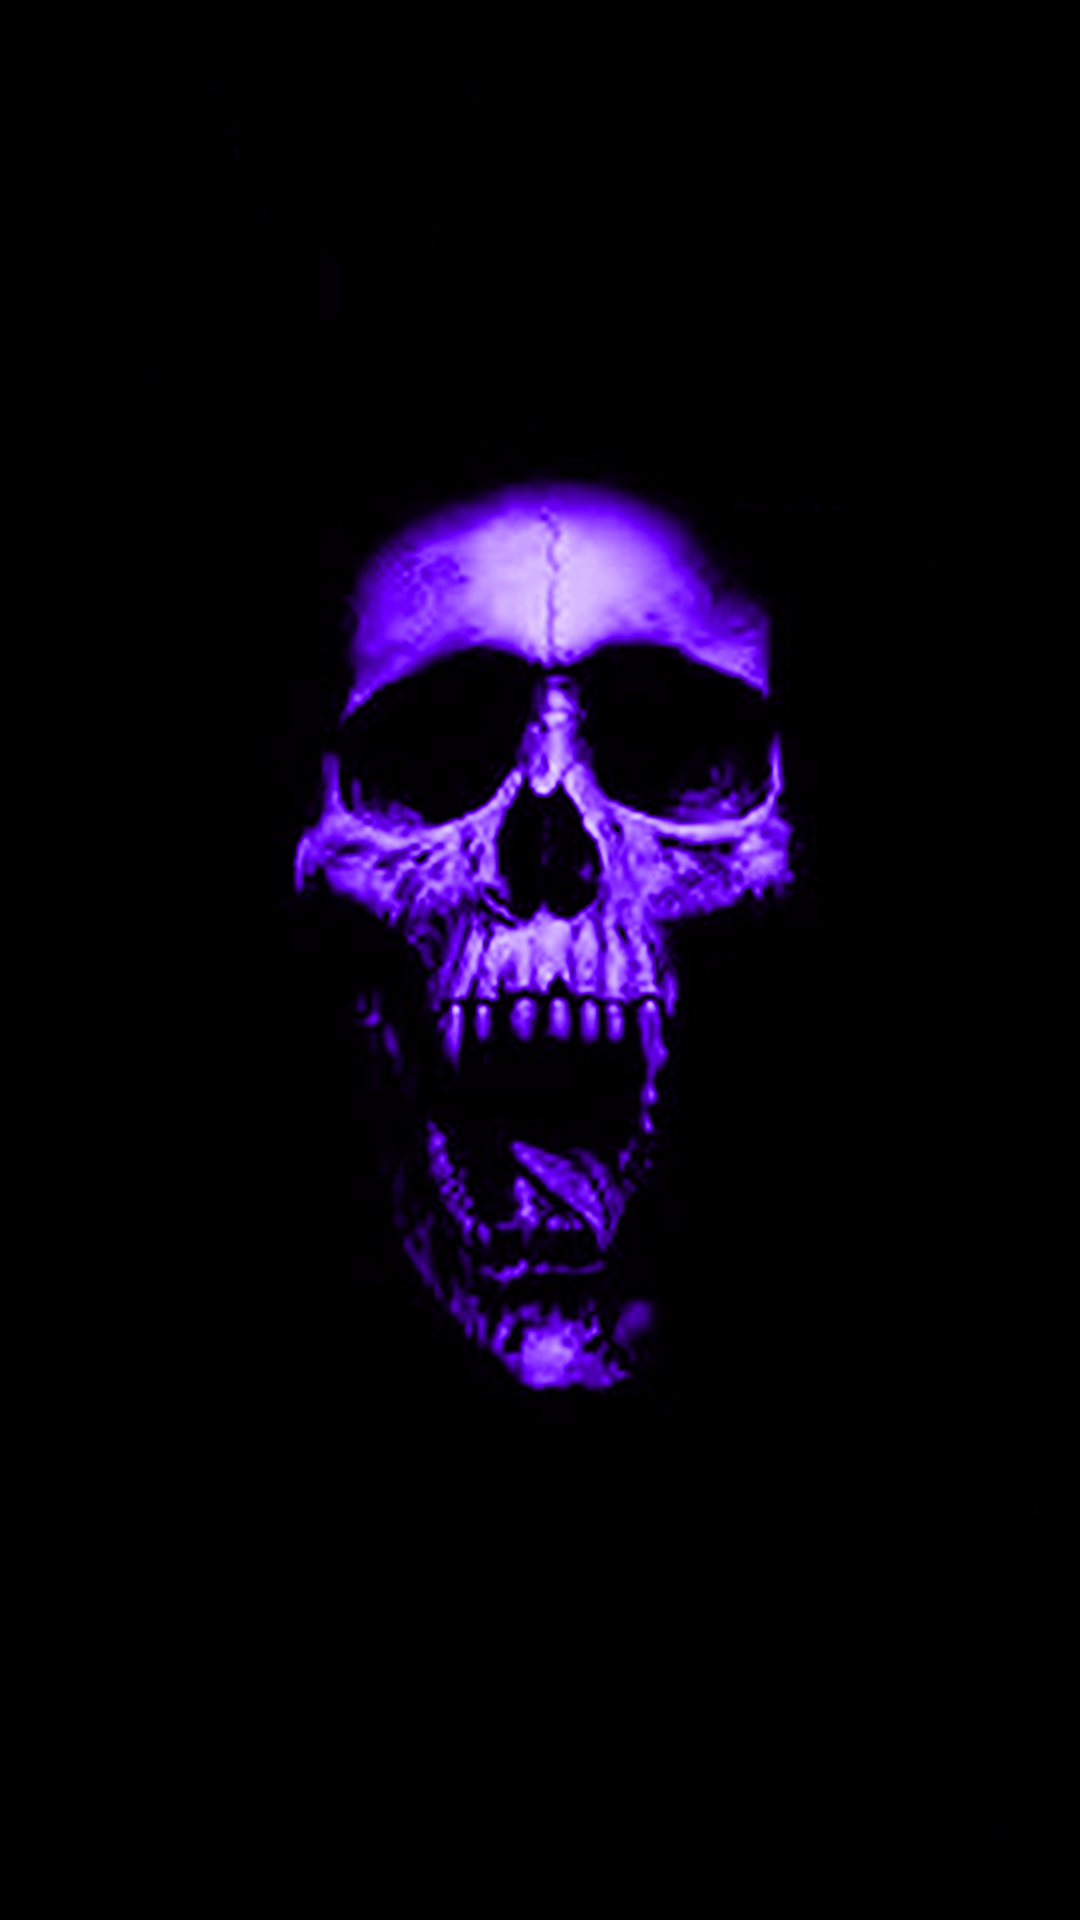 Download · Purple Skull Phone Wallpaper